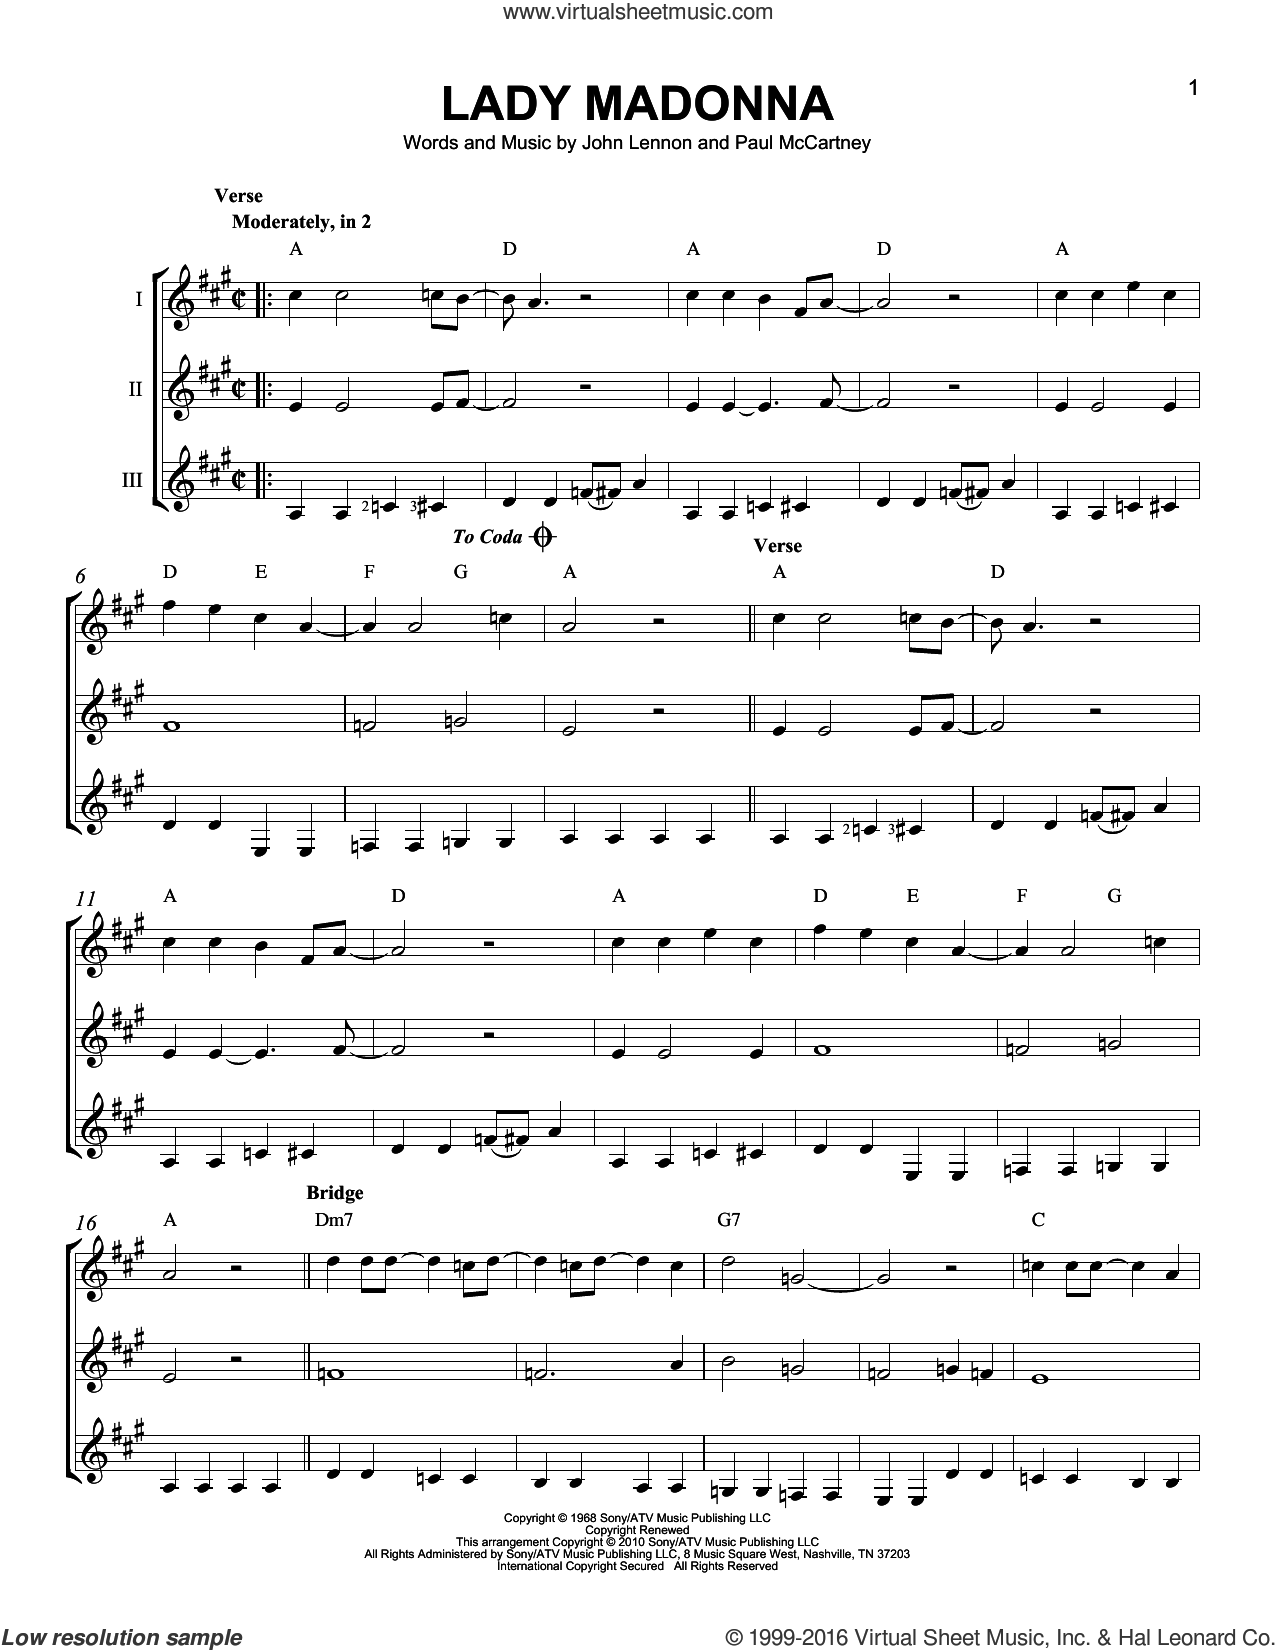 Lady Madonna sheet music for guitar ensemble by Paul McCartney